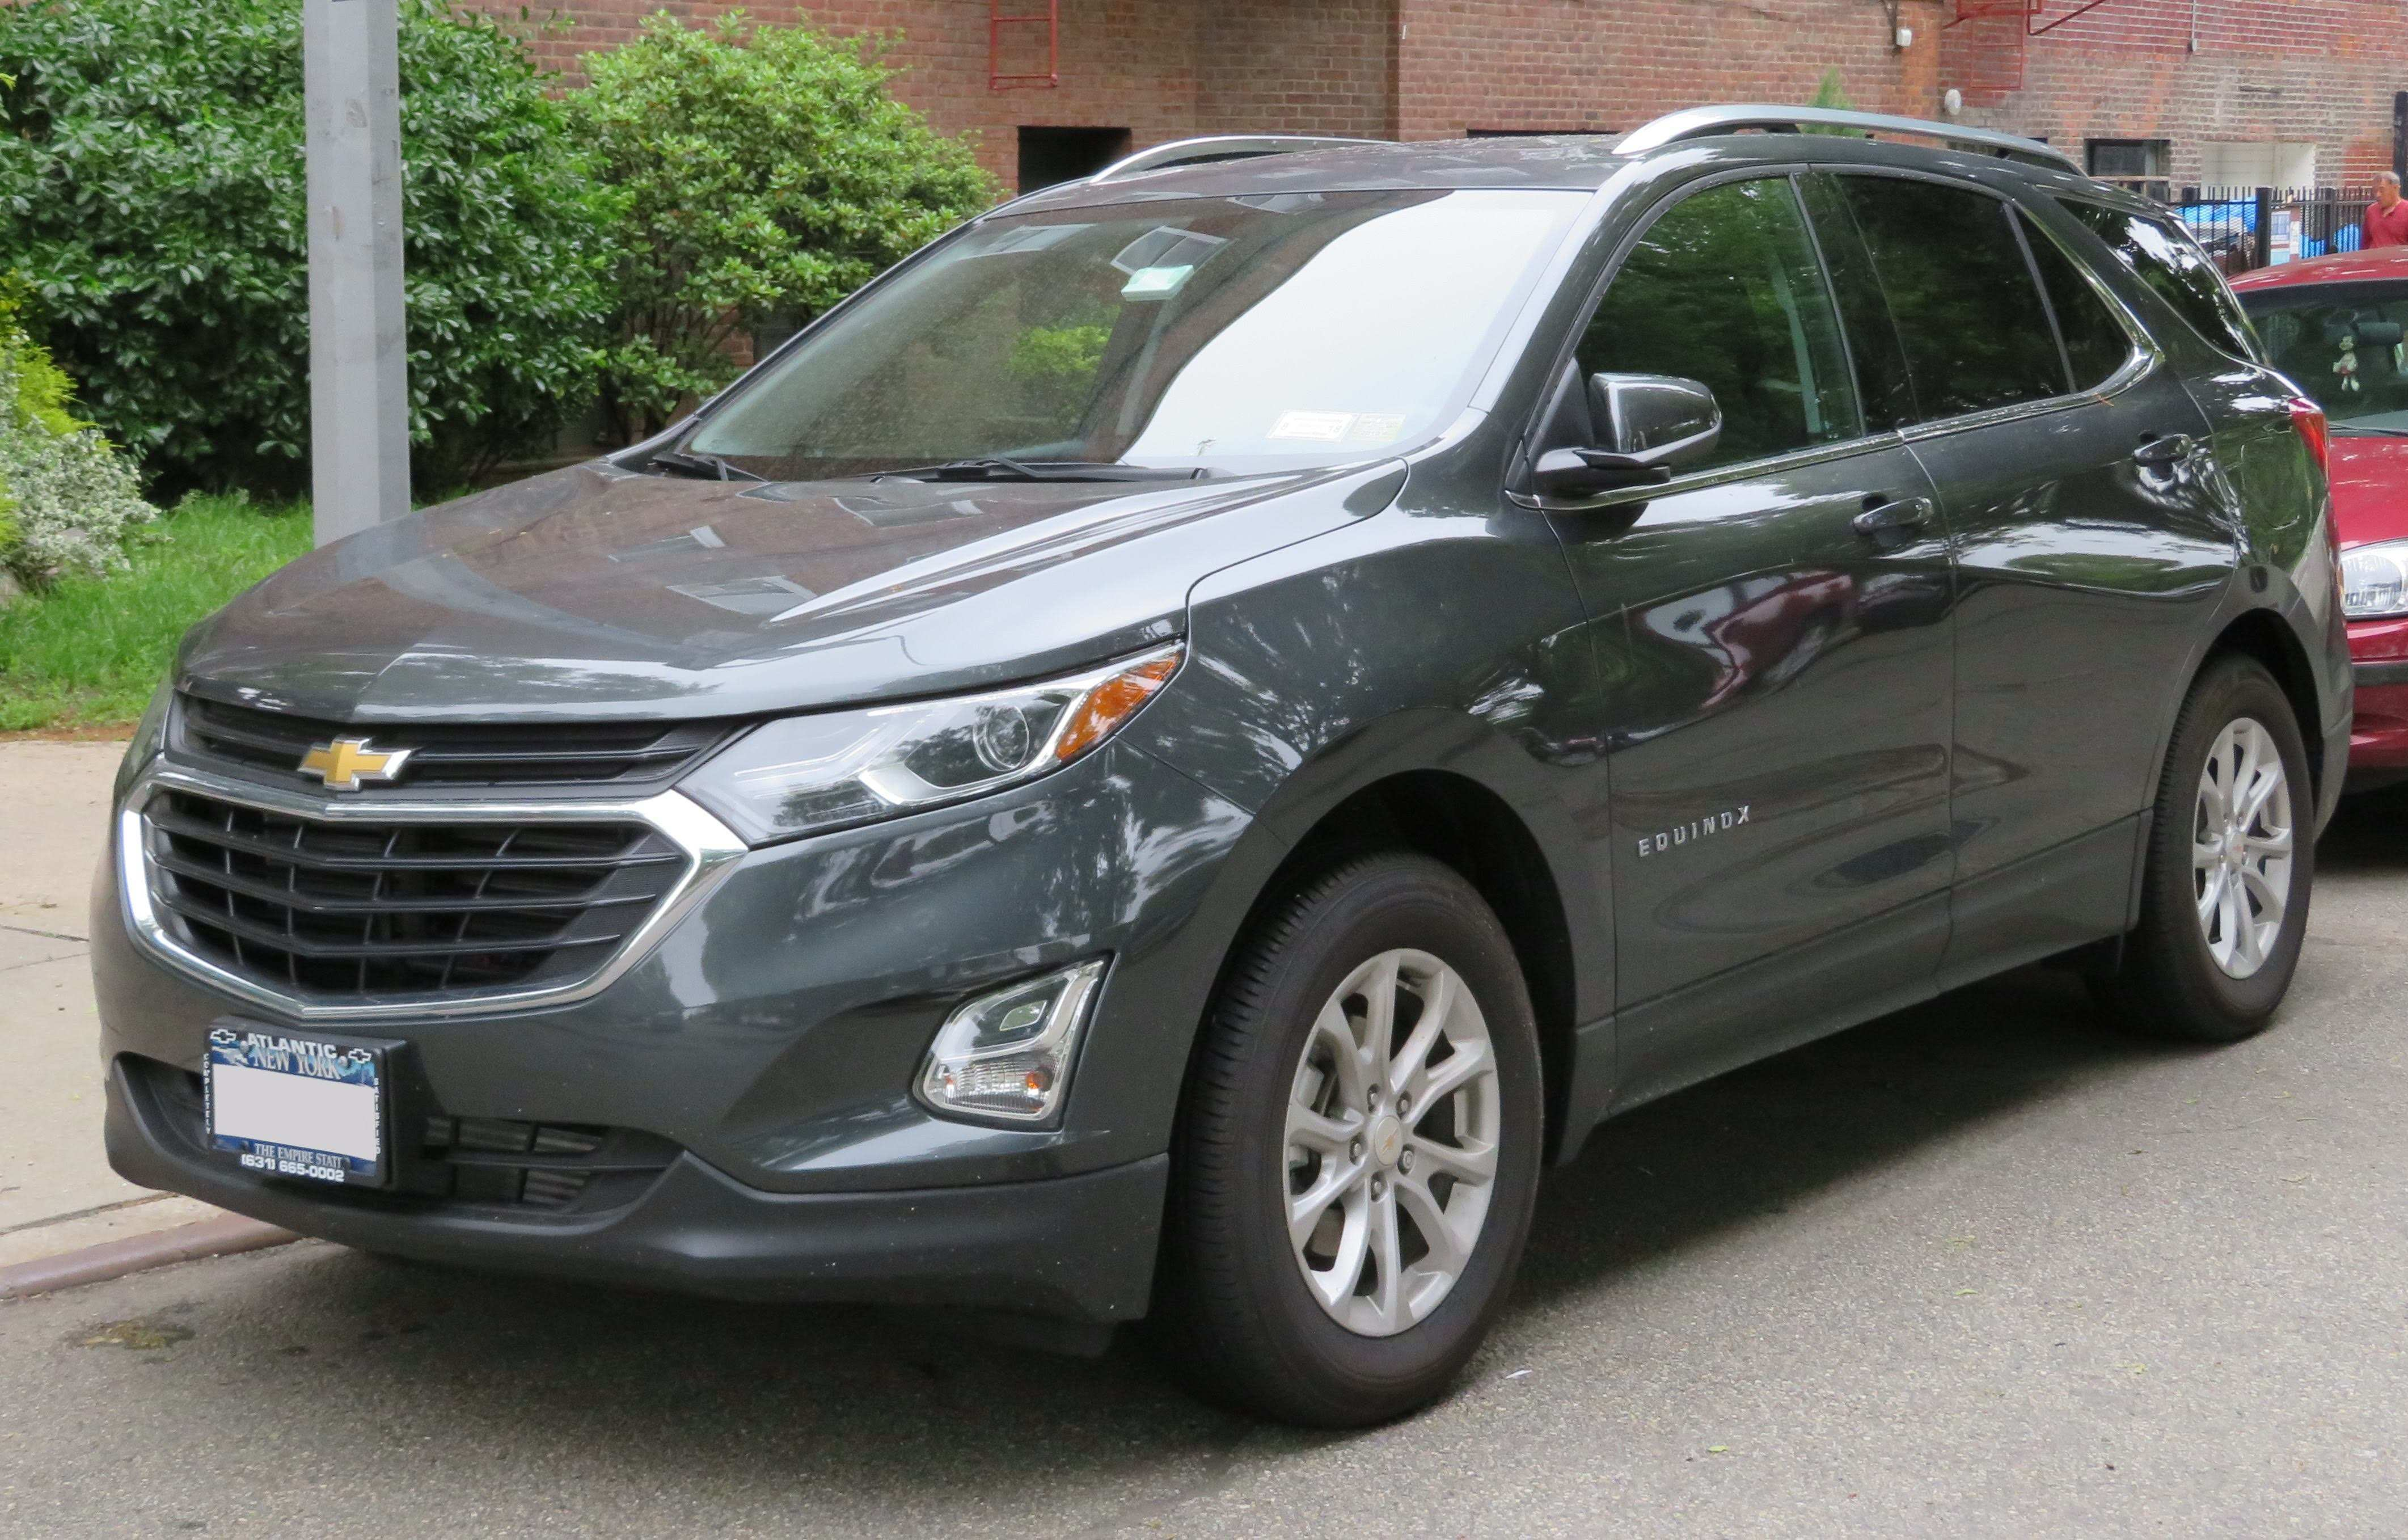 42 All New Best Chevrolet Equinox 2019 Lt New Review Concept by Best Chevrolet Equinox 2019 Lt New Review